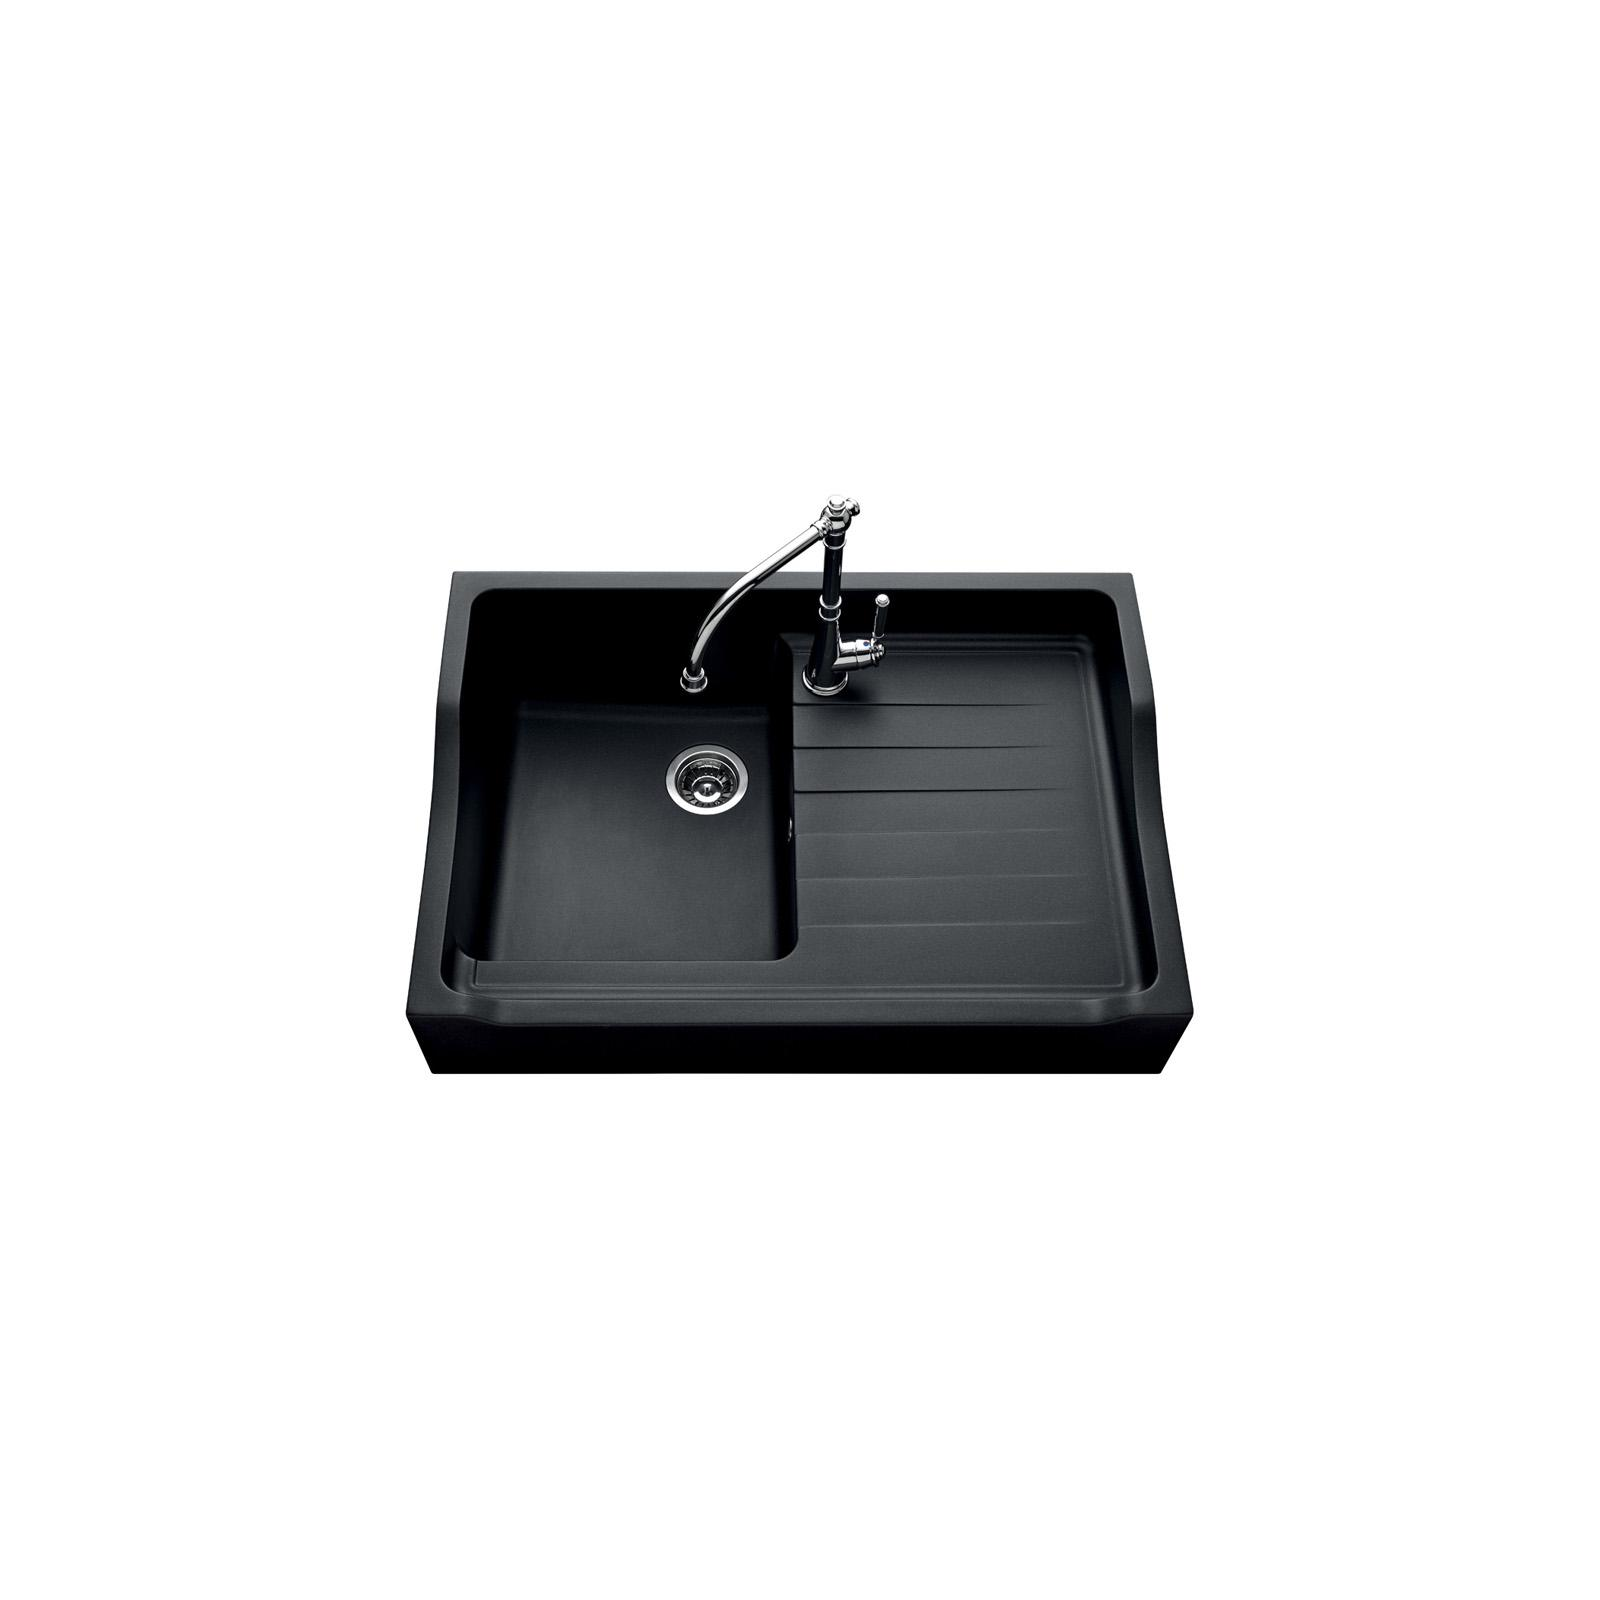 High-quality sink François 1er granit black - one bowl